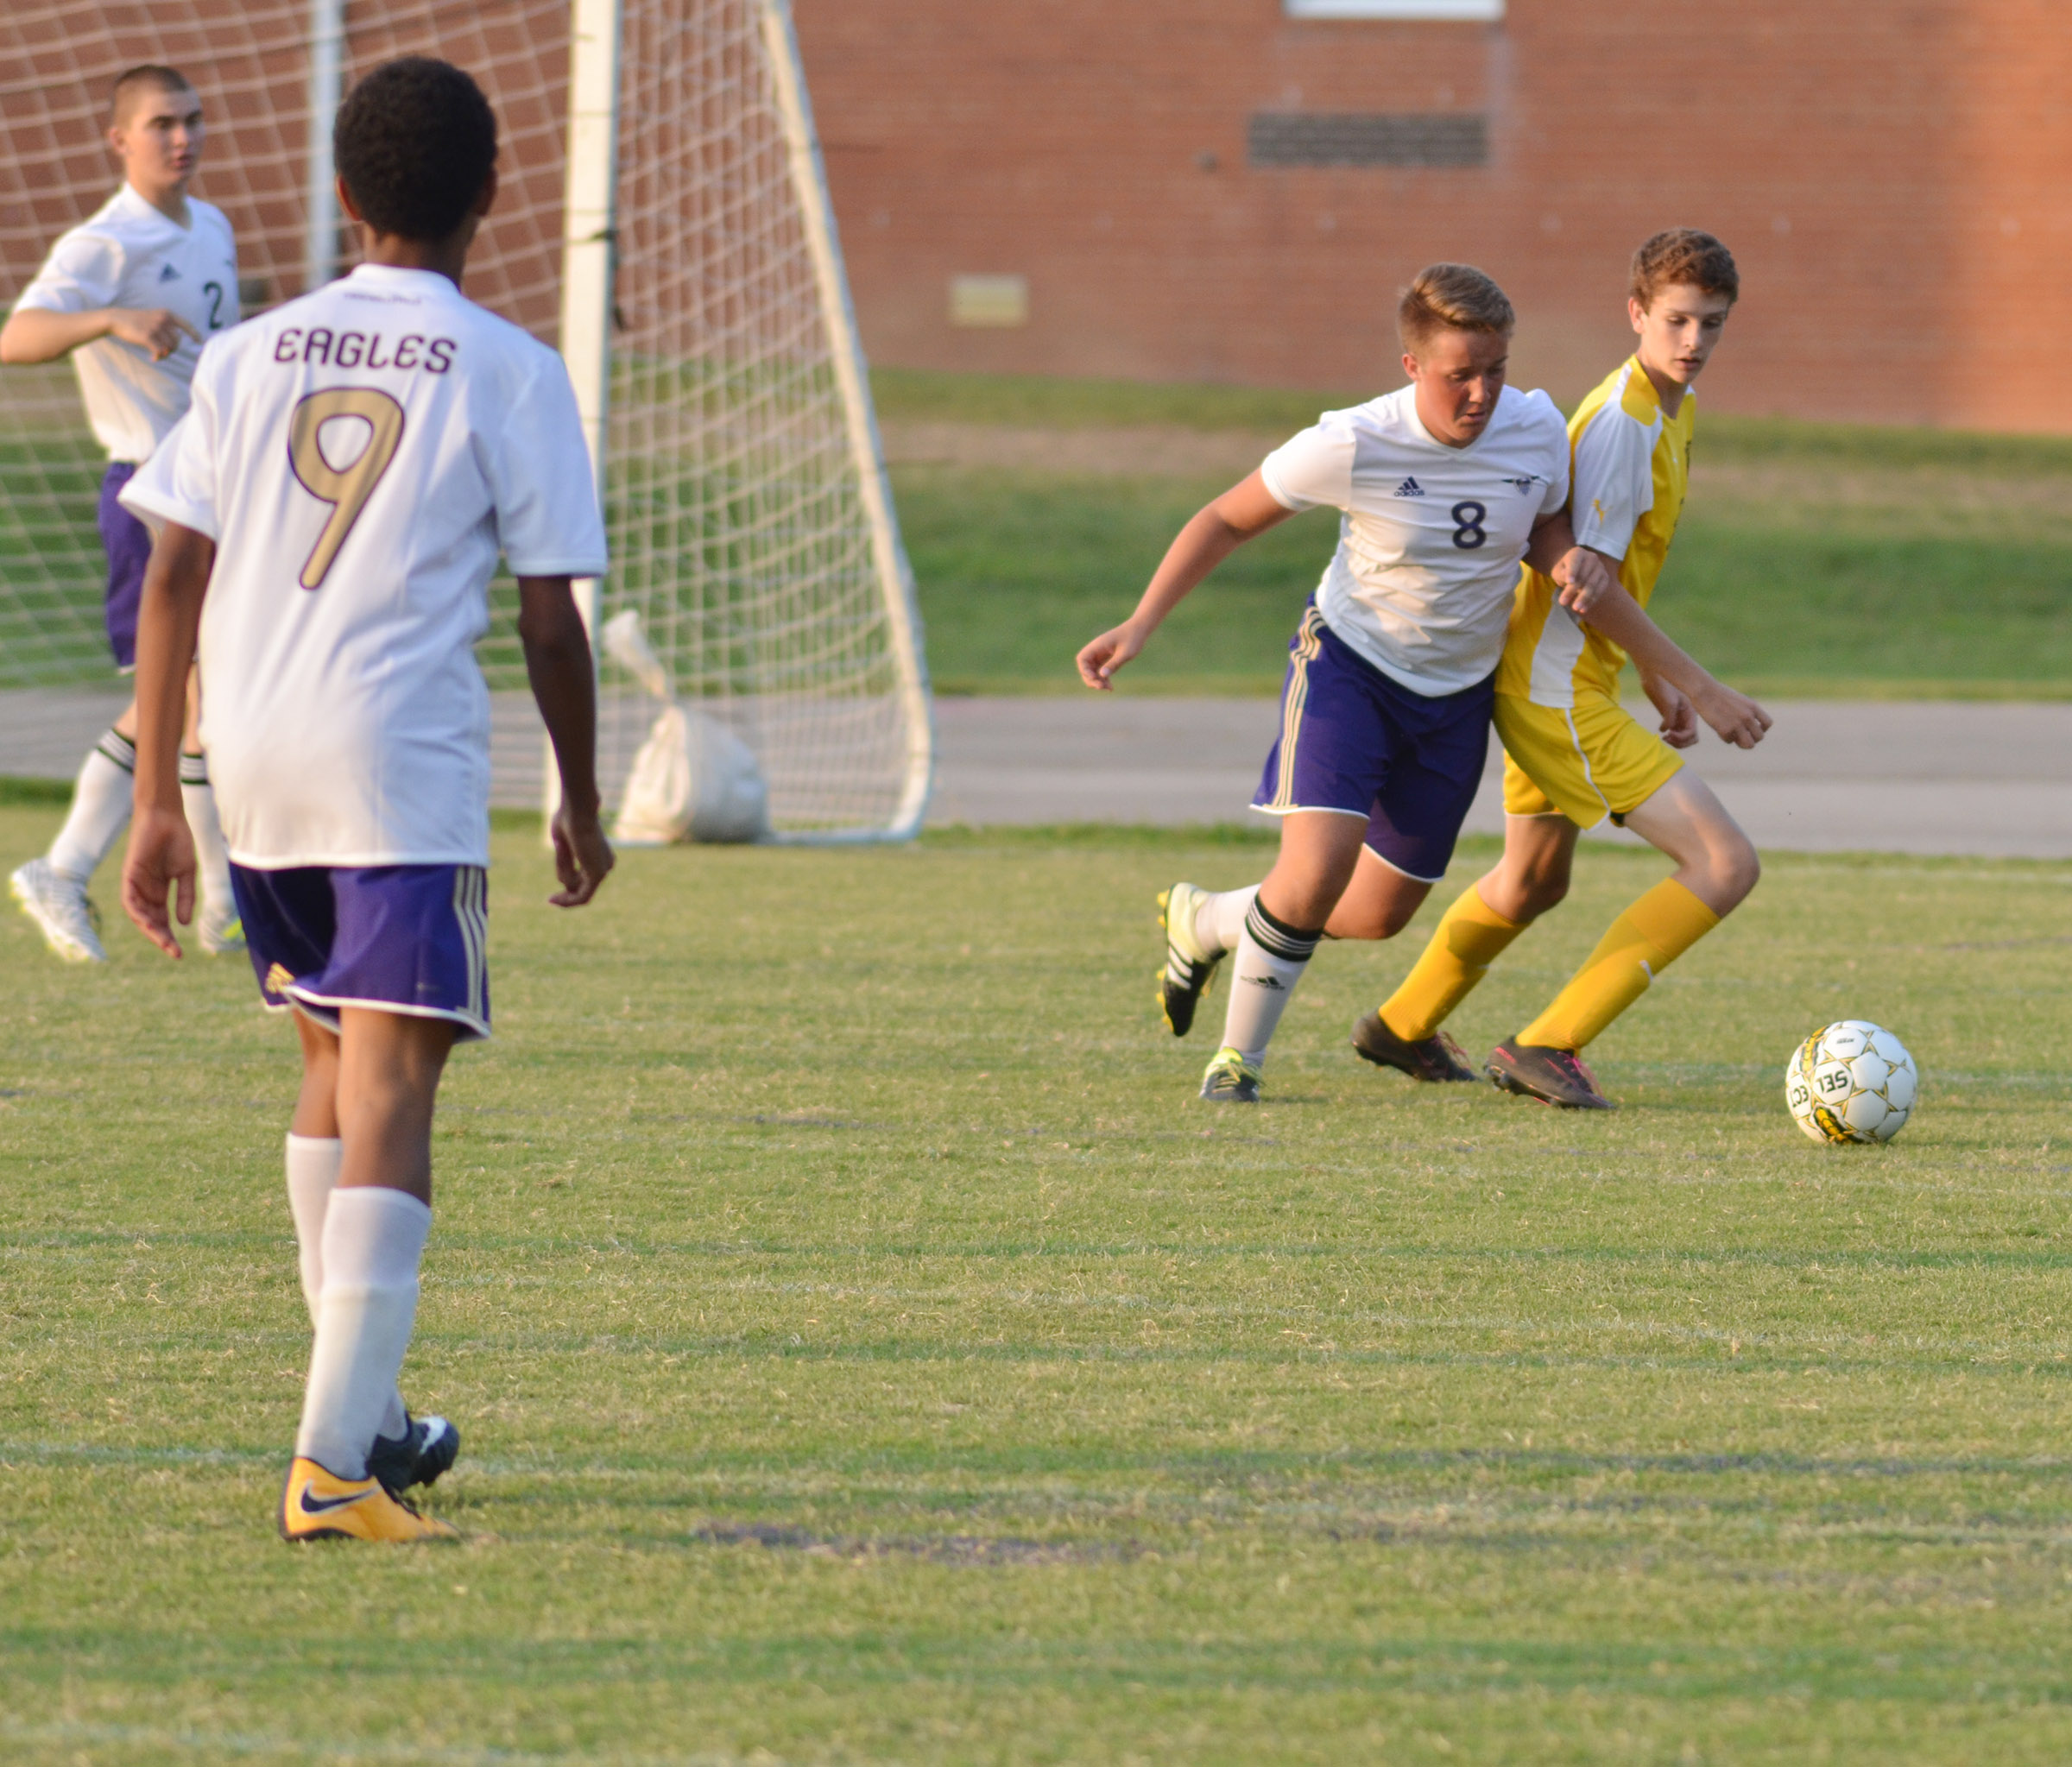 CHS senior Justin Richerson plays defense.